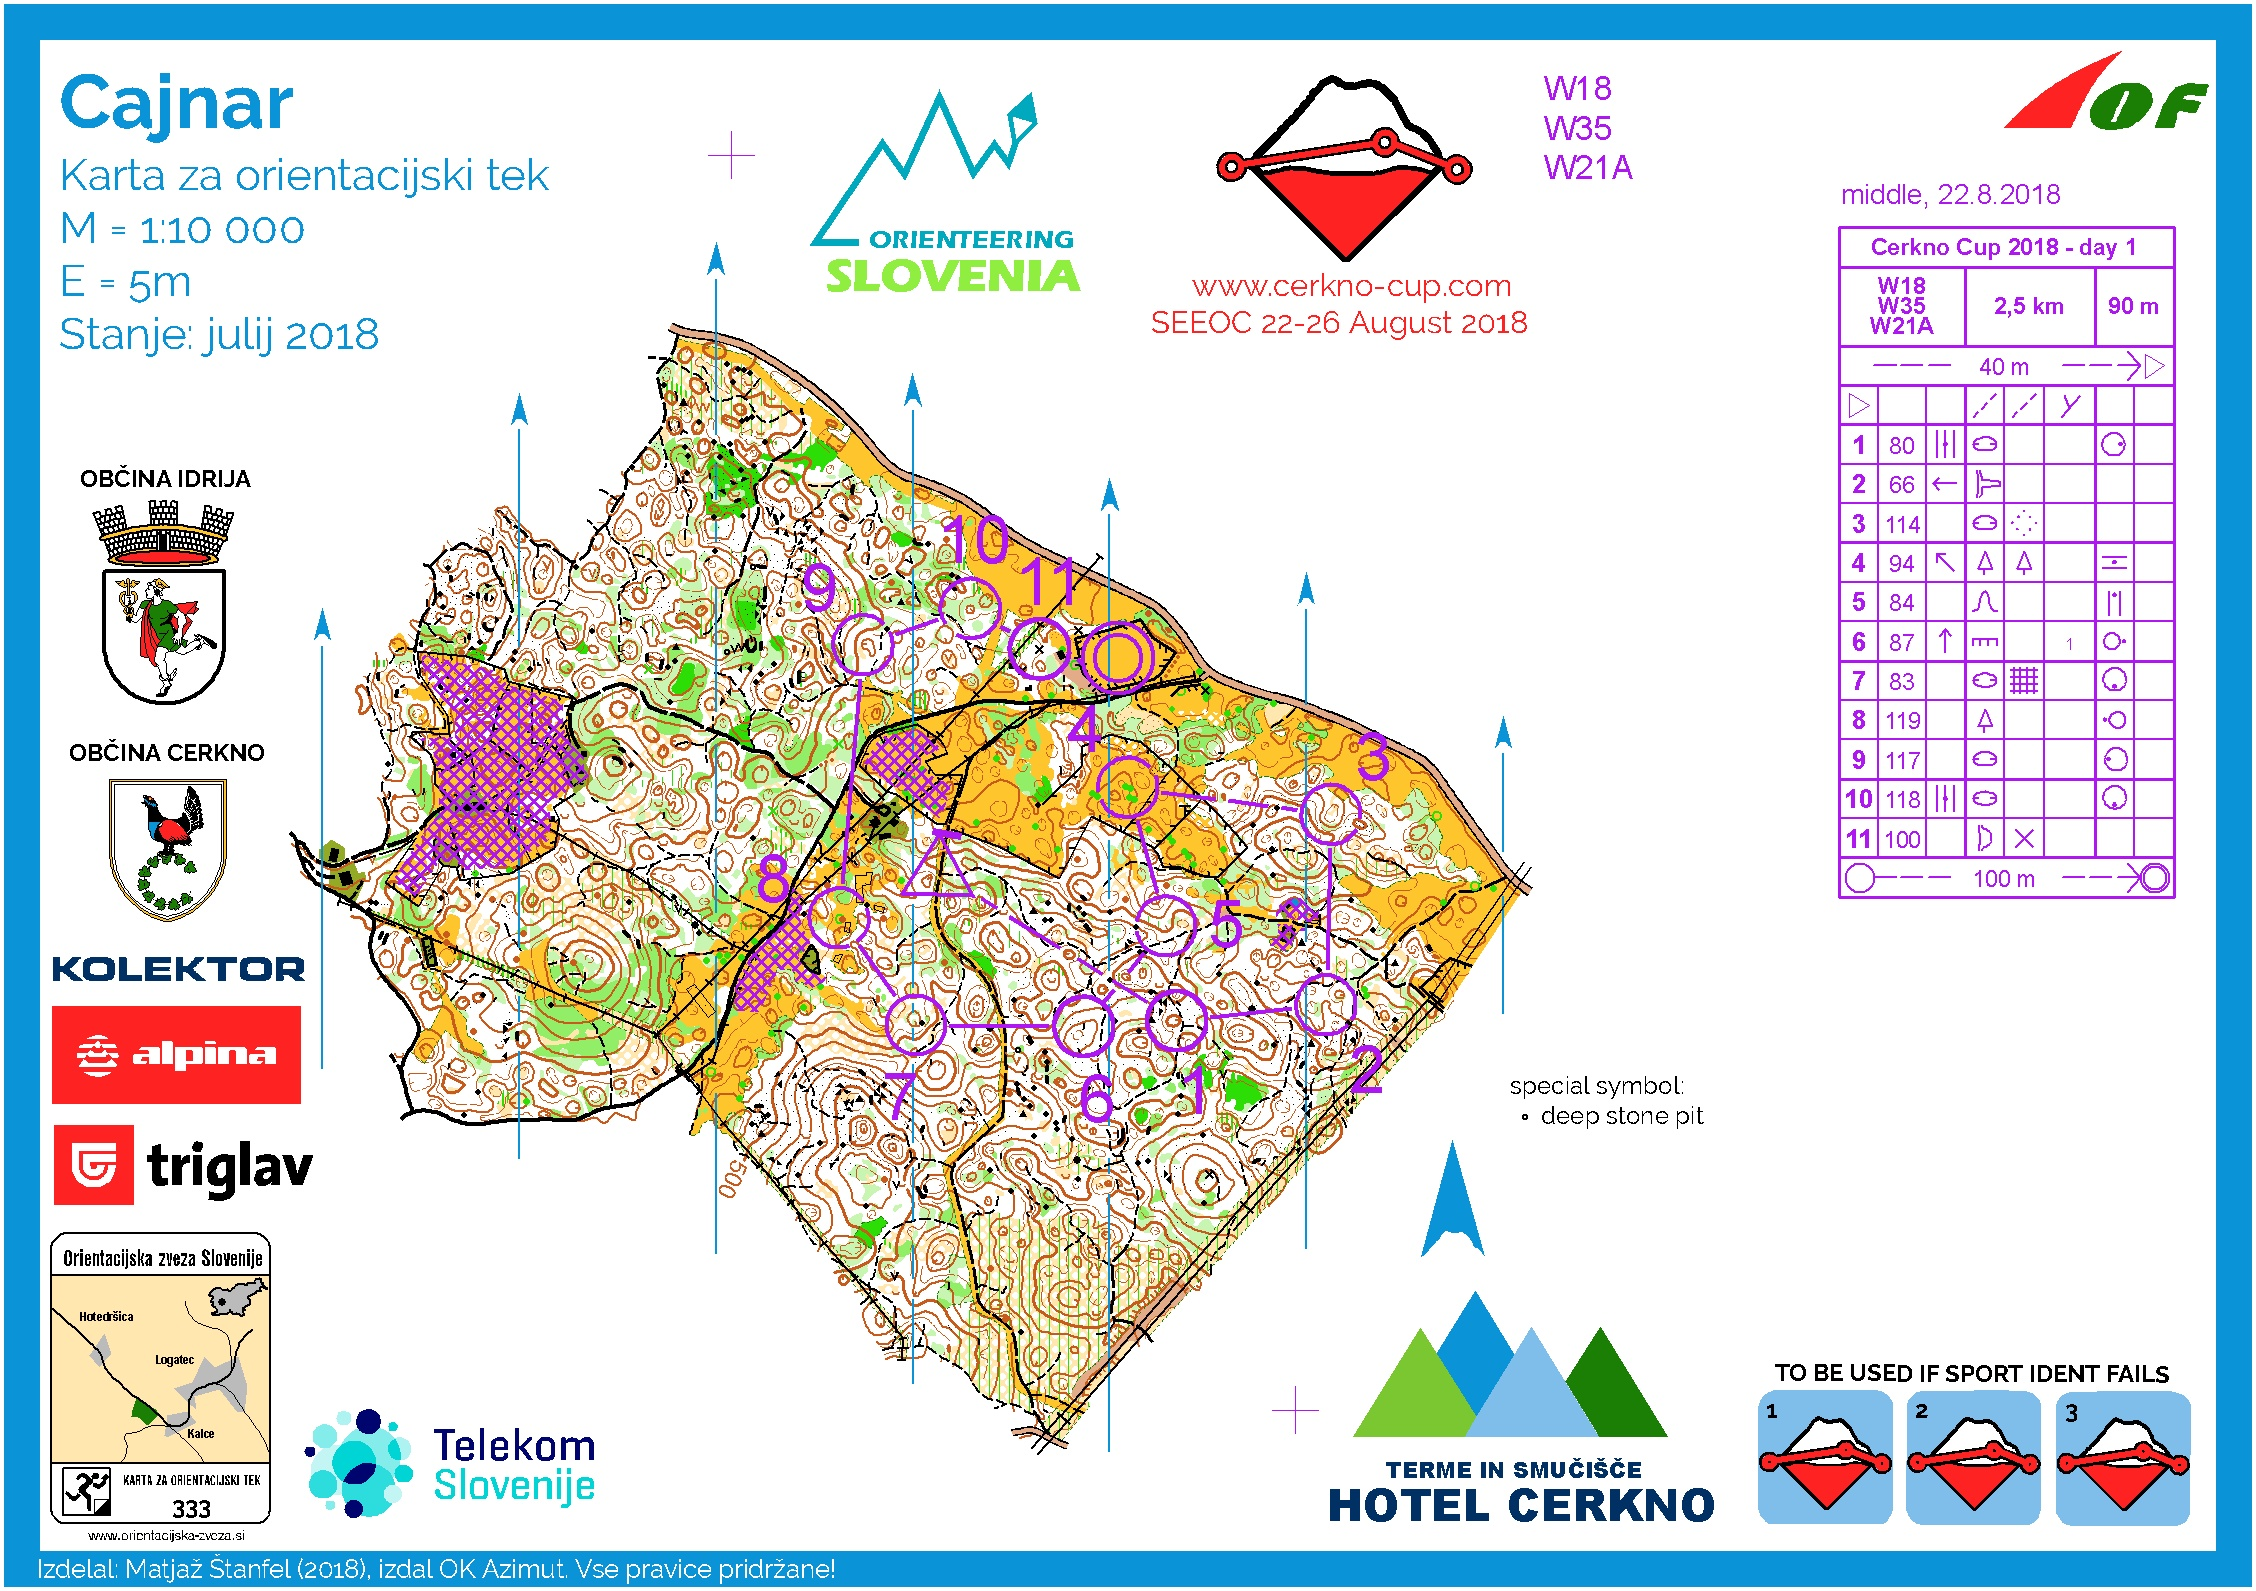 Cerkno Cup - DAY 1 - M18, W35, W21A (22. 08. 2018)